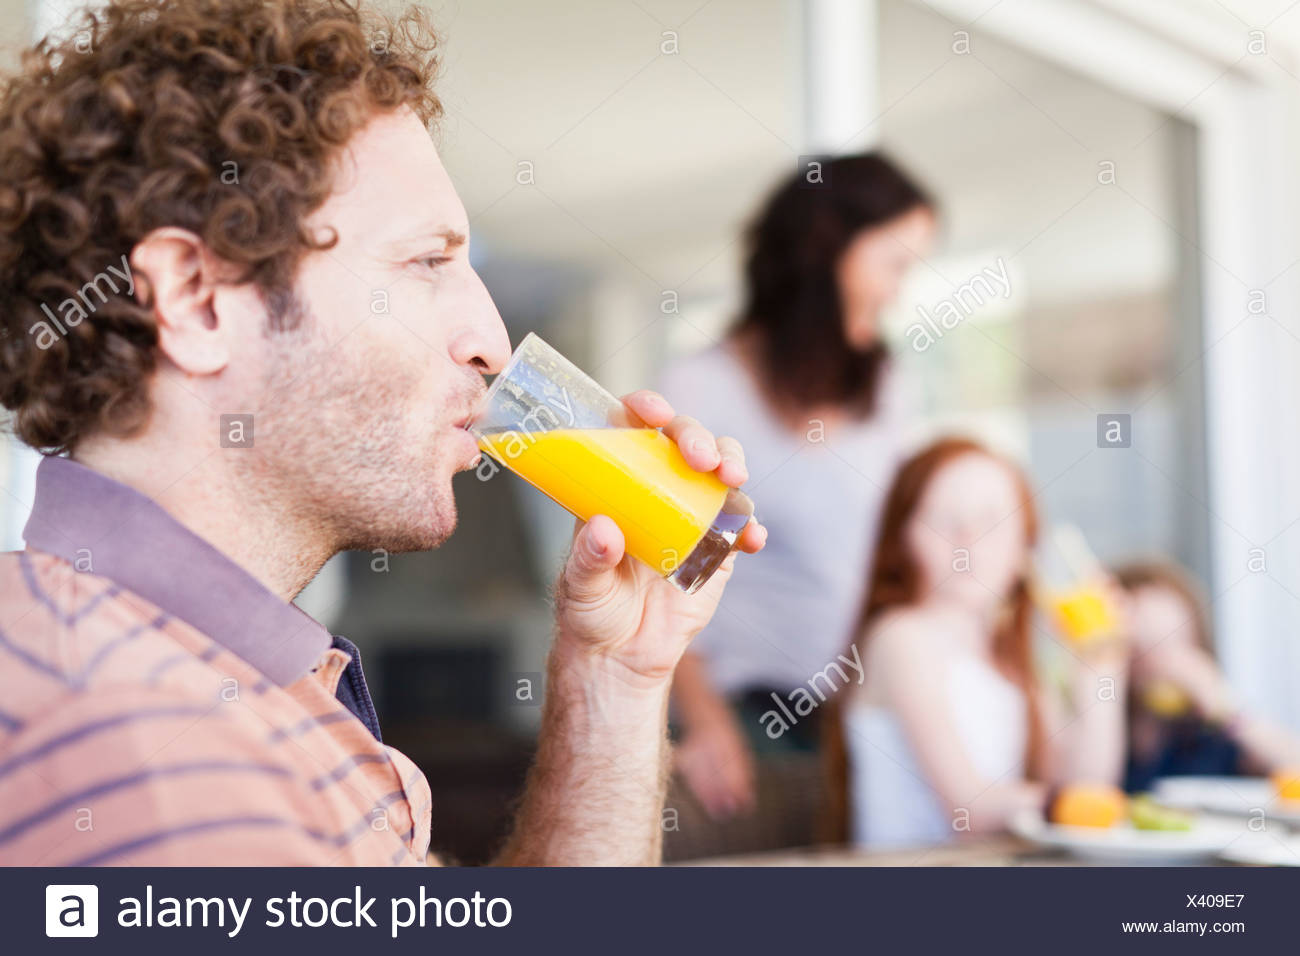 Man drinking glass of orange juice - Stock Image